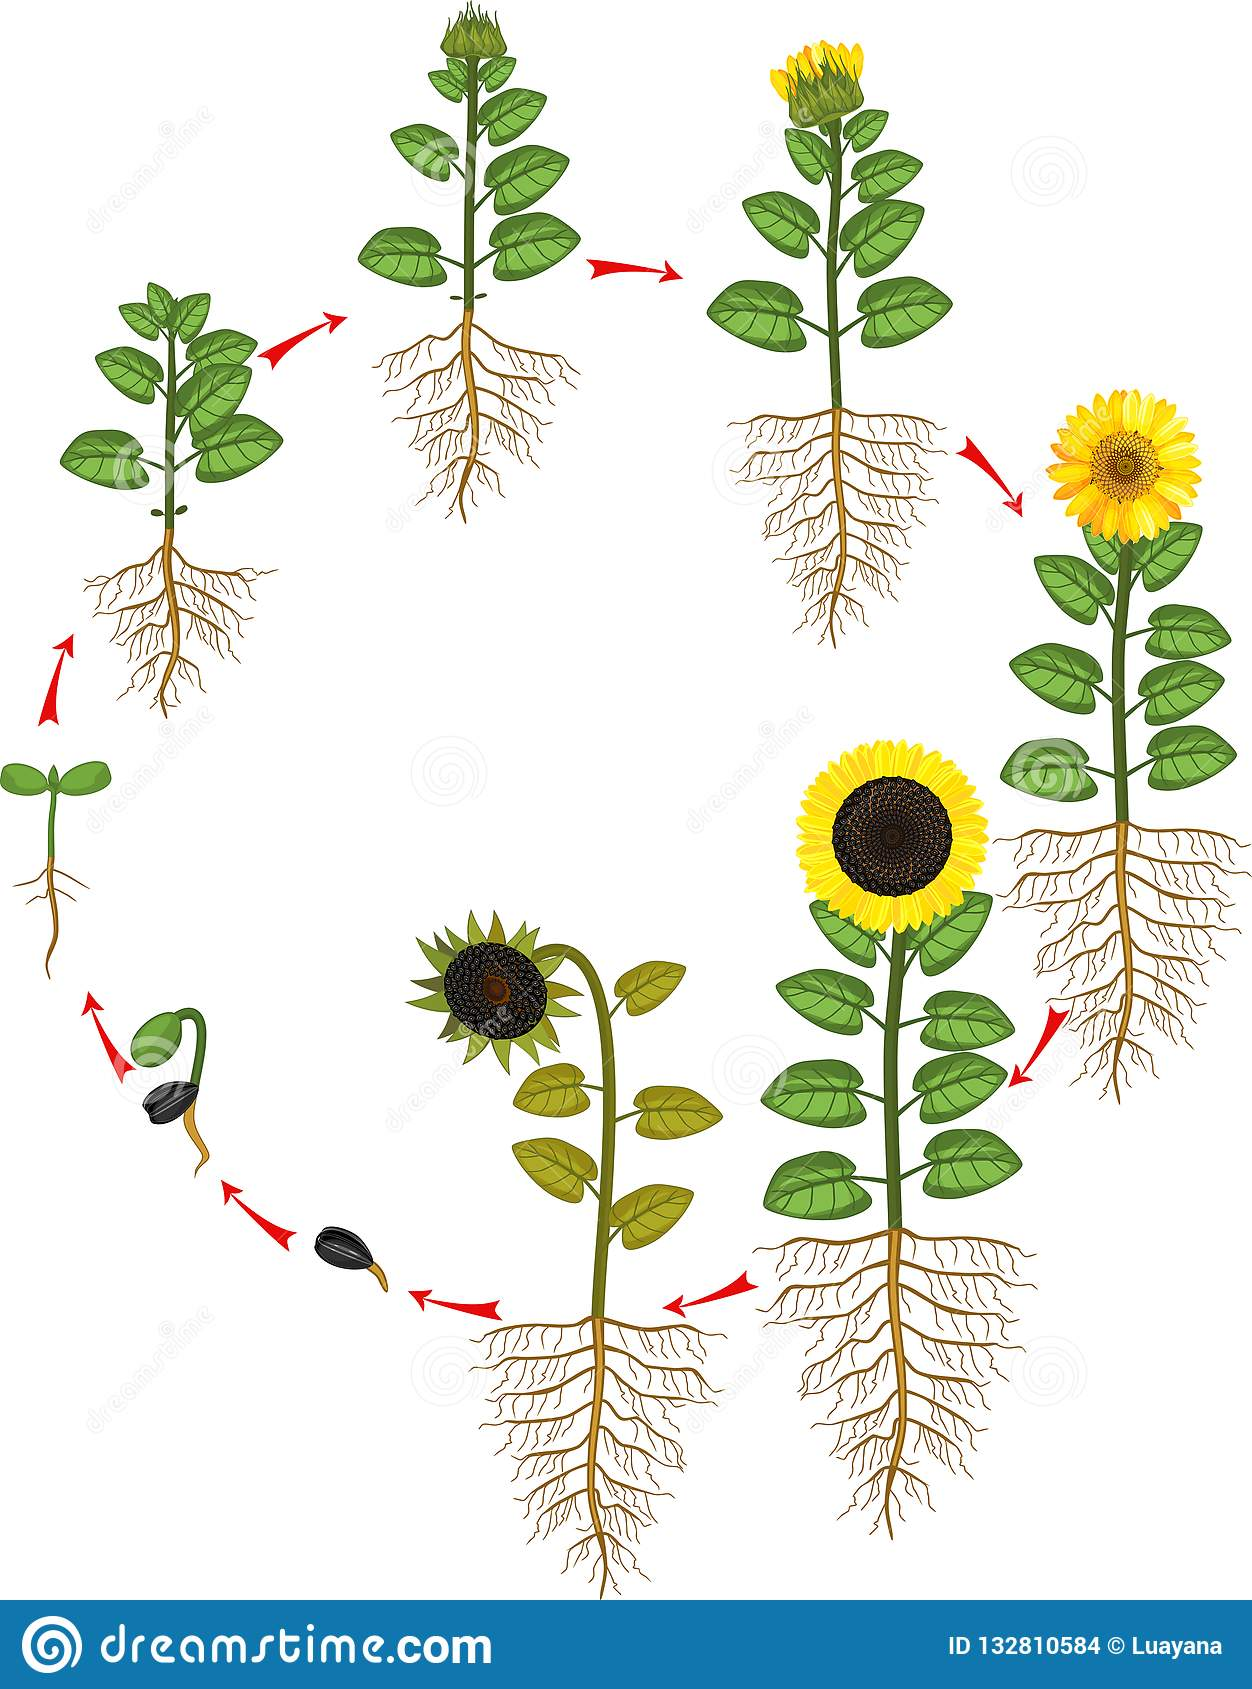 Sunflower Life Cycle. Growth Stages From Seed To Flowering ...